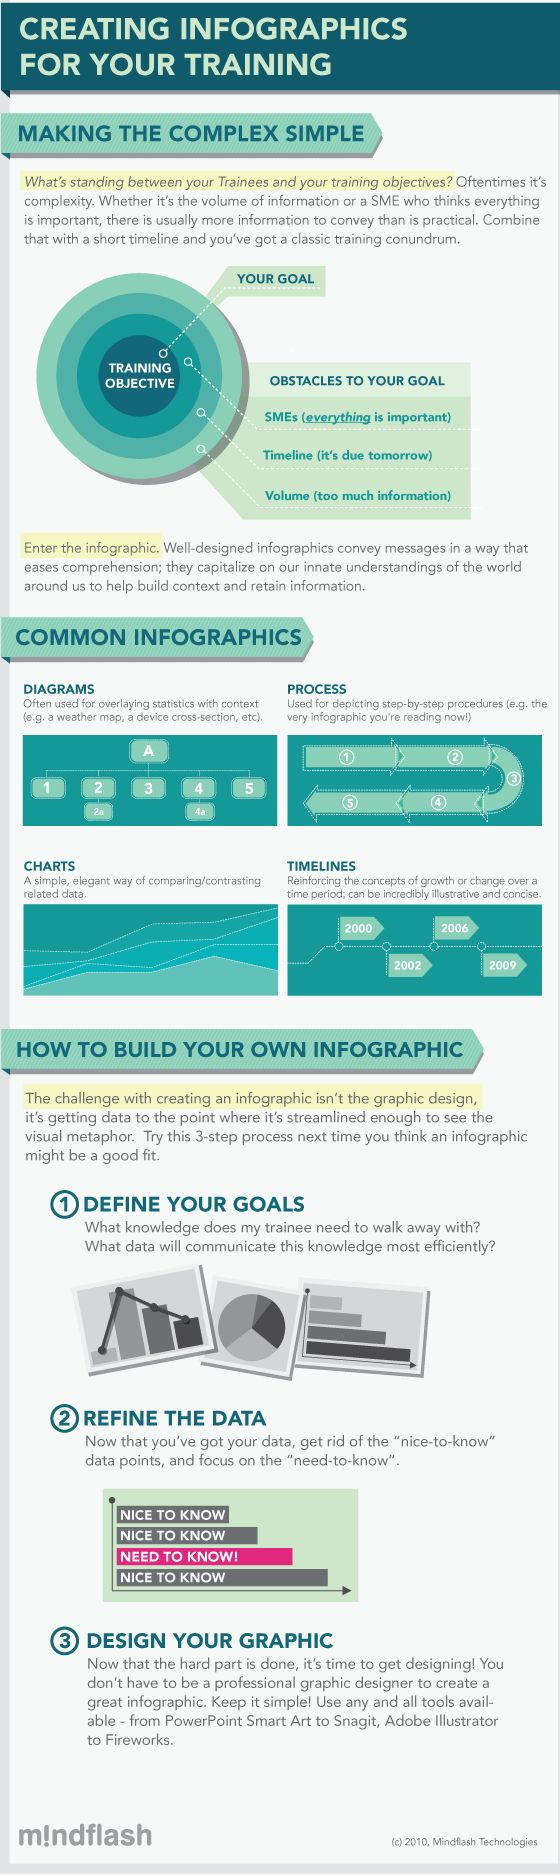 Creating infographics for your